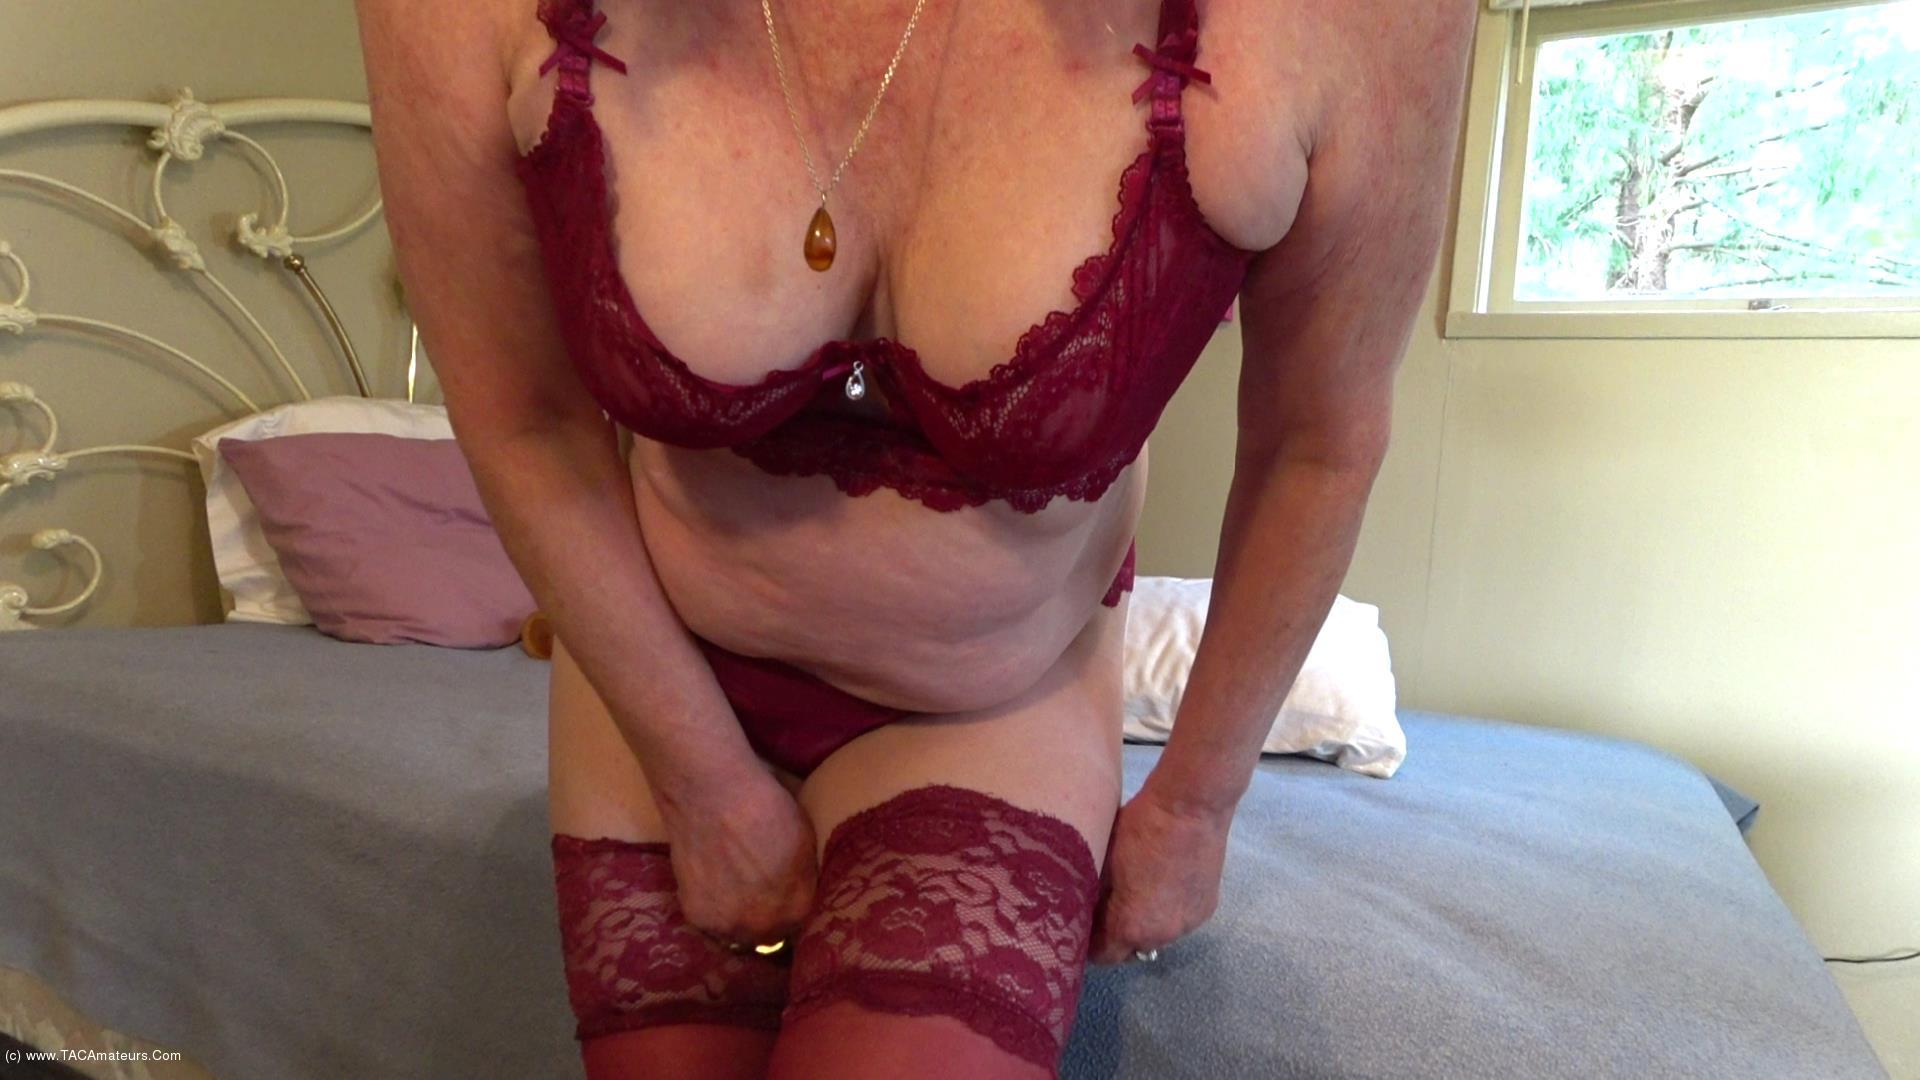 CougarBabeJolee - Panty Sniff Sniff. Cum Get Some Hot Arse In Panties scene 0